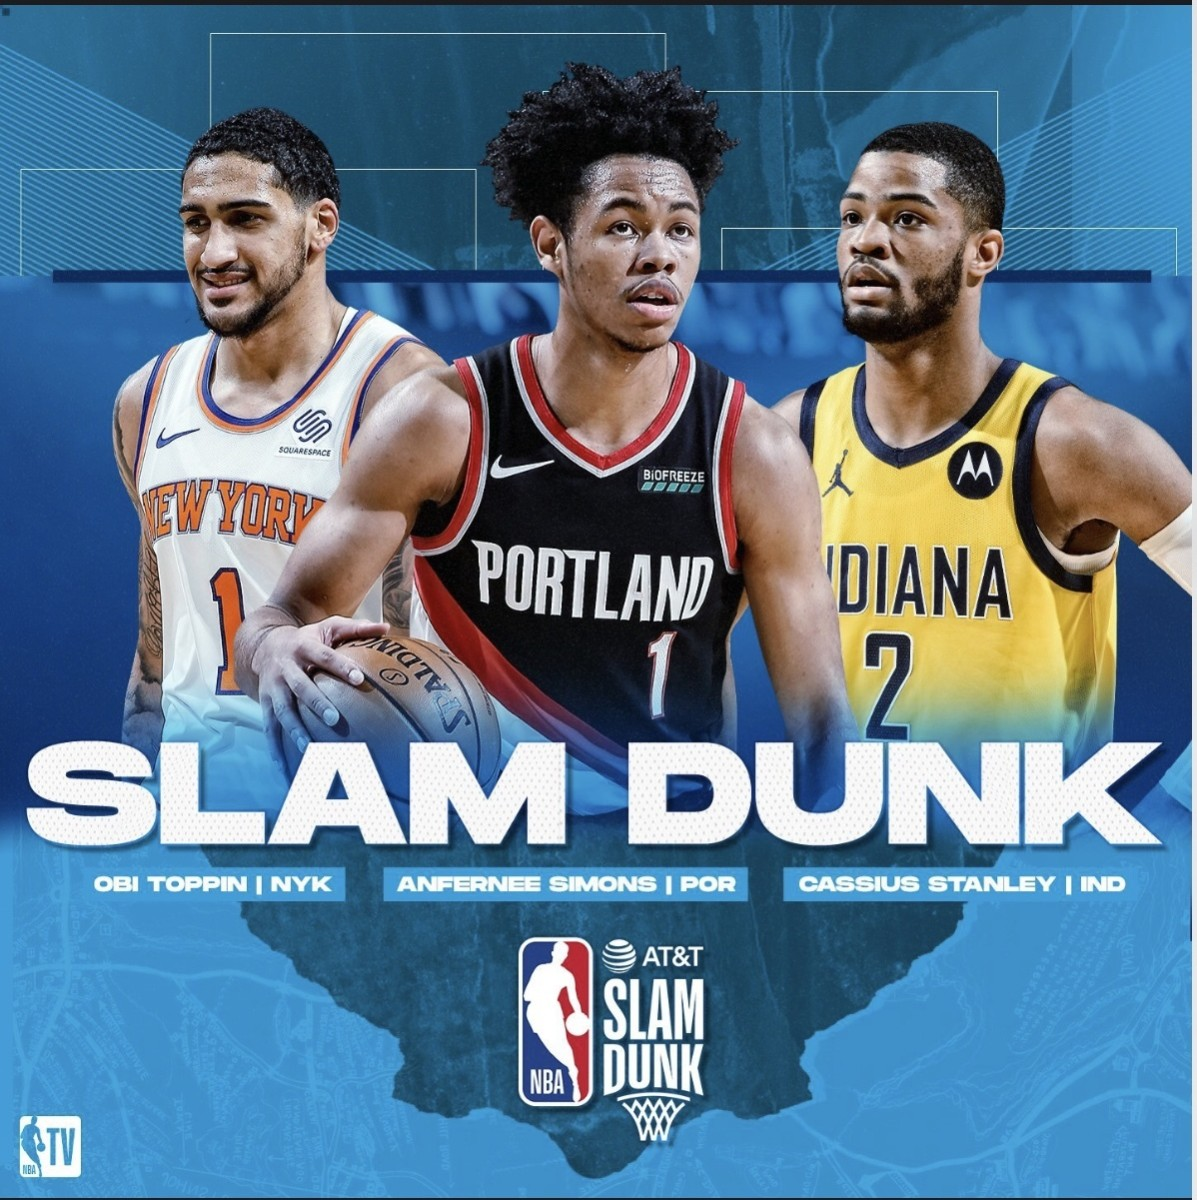 The dunk contest will surprisingly have three participants this year with Obi Toppin, Afernee Simons, and Cassius Stanley. Judges will be Dominique Wilkins, Spud Webb, Jason Richardson, Dee Brown, and Josh Smith.